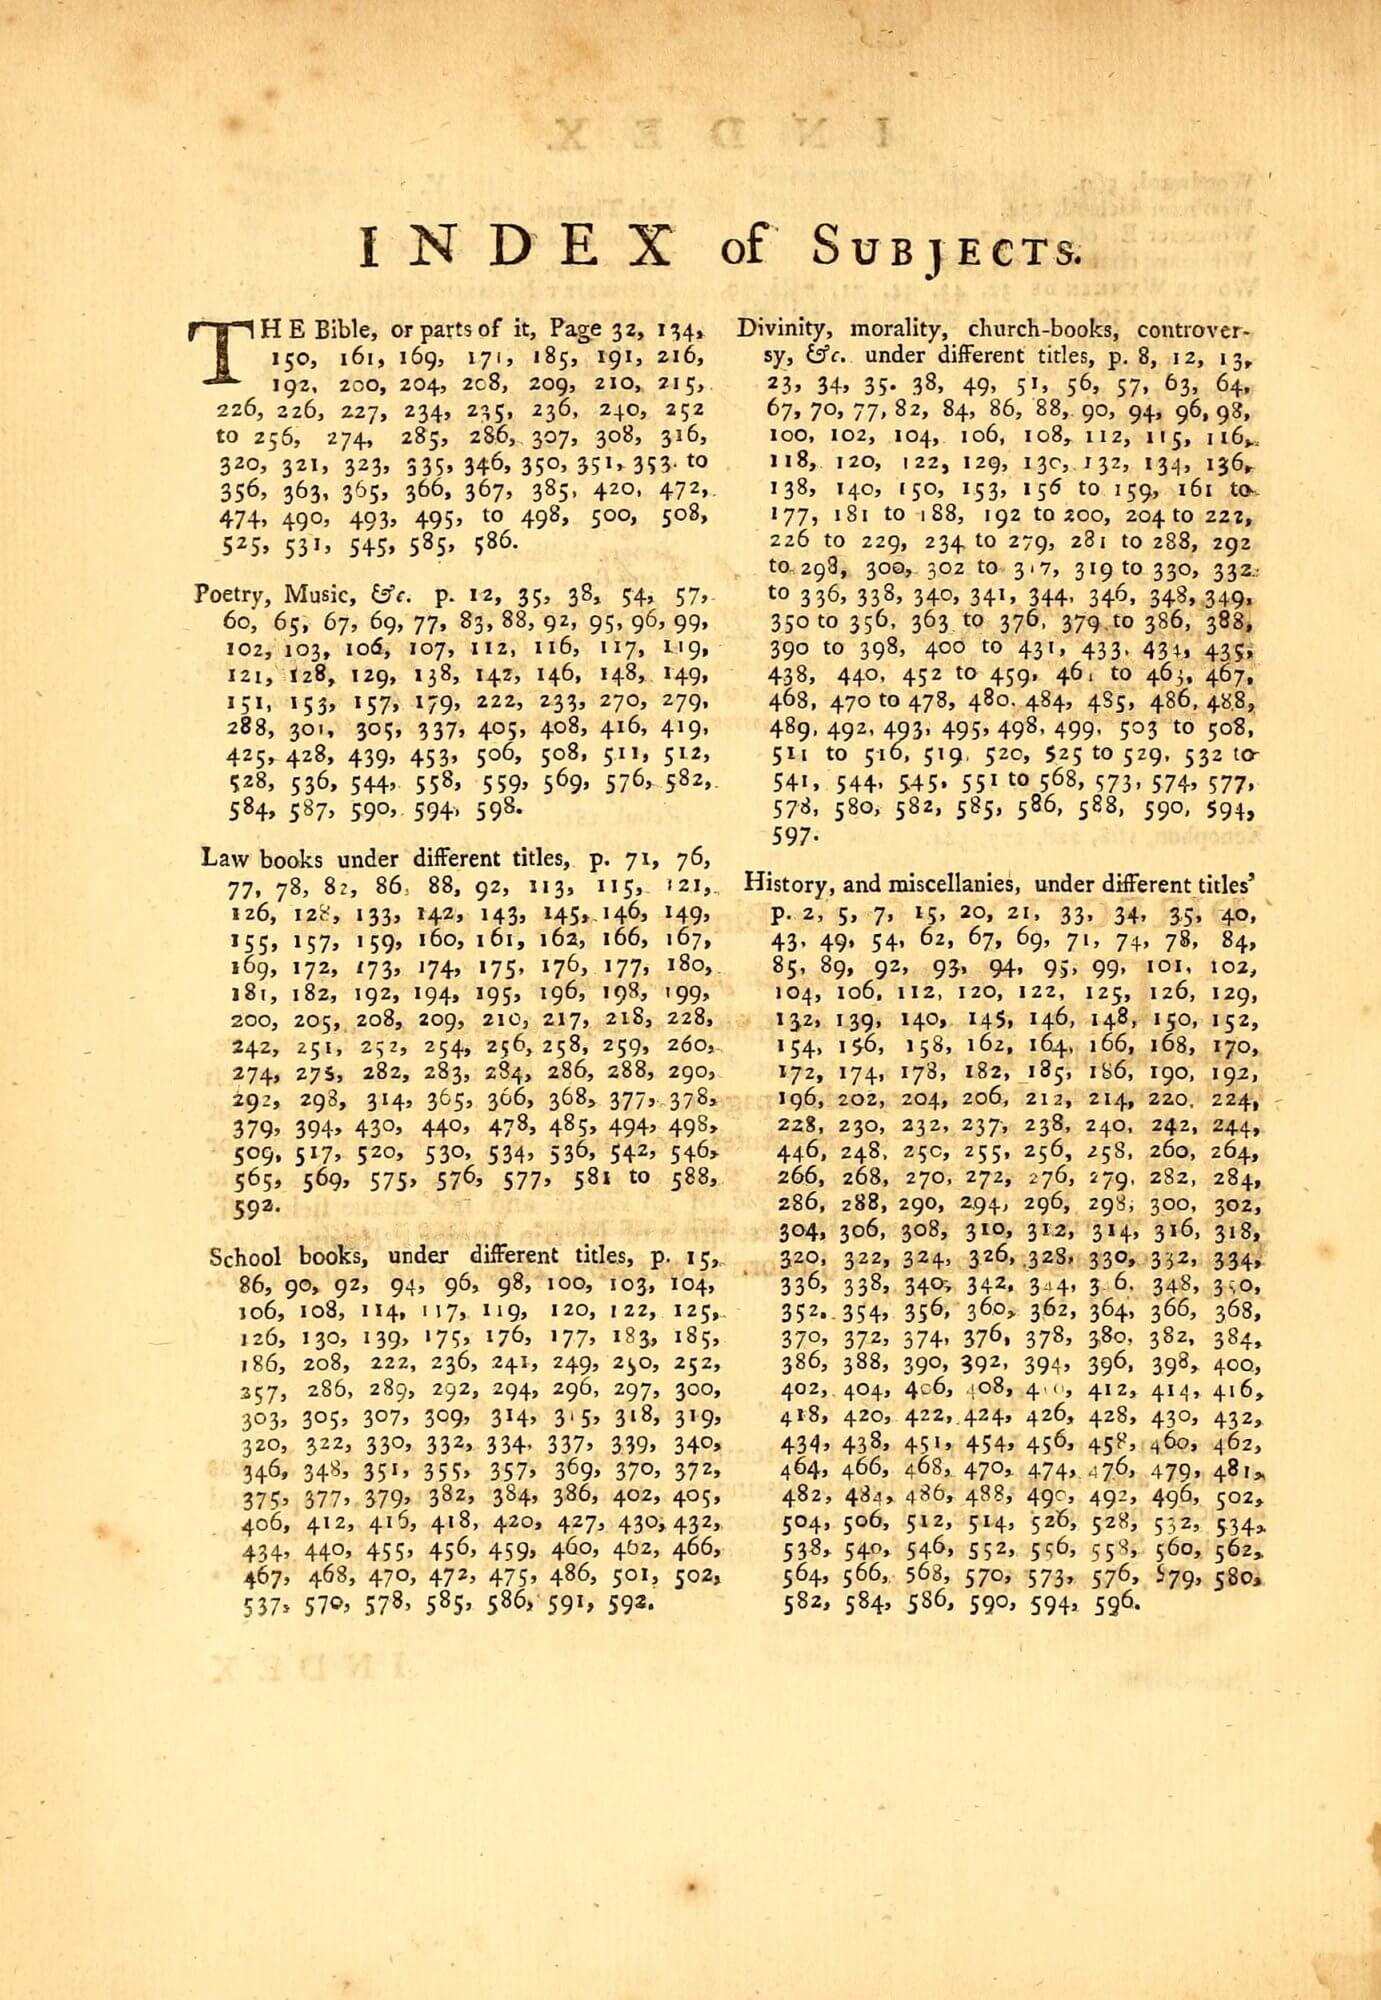 Ames's history of English printing includes an alphabetical index of printers and other persons, followed by this single-page index of subjects. To our eye, this is curiously arranged---why is it not alphabetical? Perhaps because this organization allows the blocks of numbers for each subject heading to remain intact instead of being split over columns.